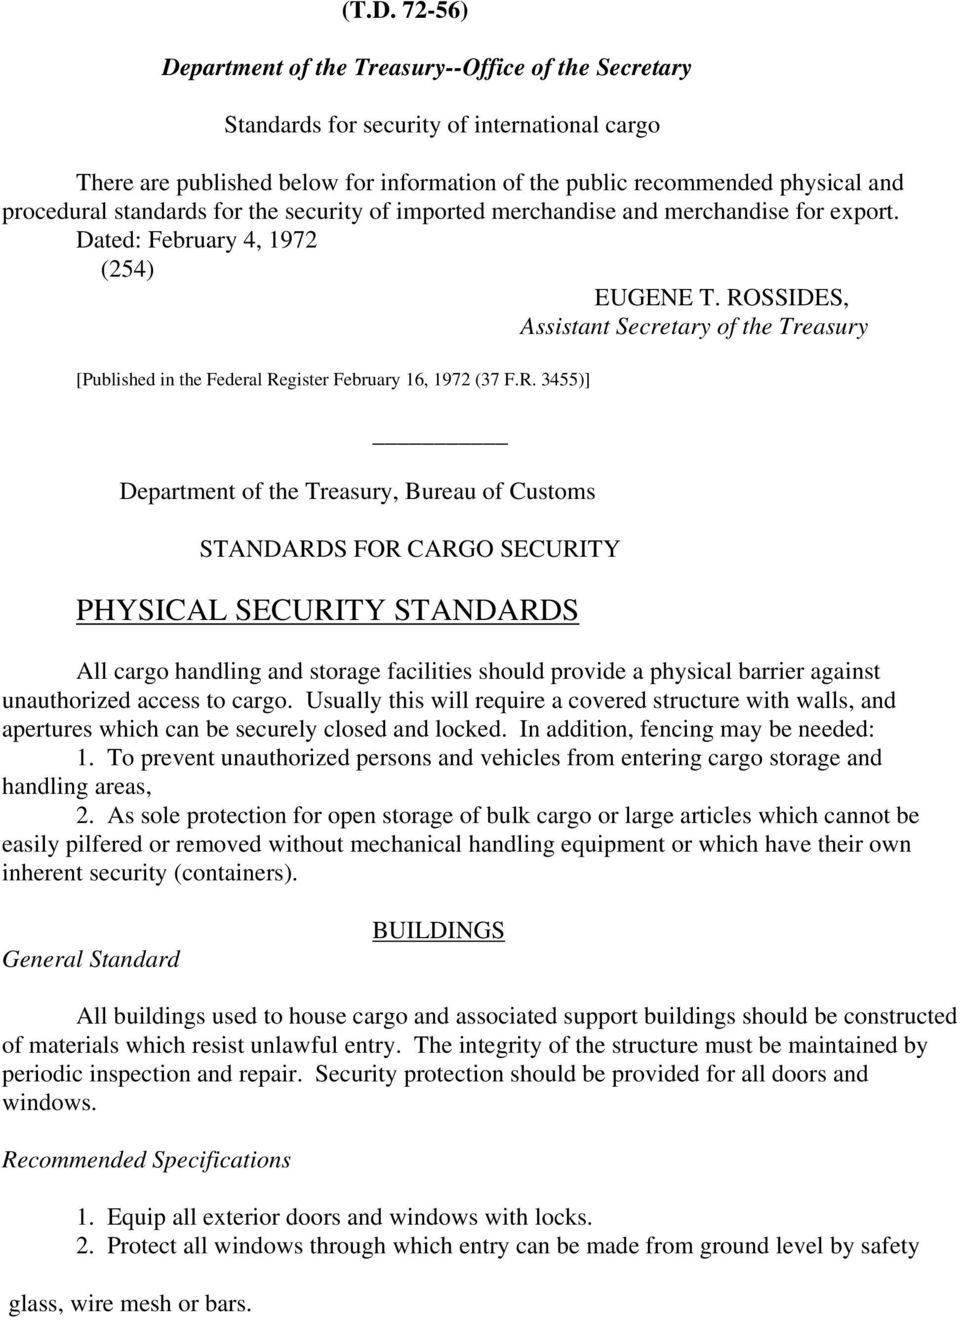 PHYSICAL SECURITY STANDARDS - PDF